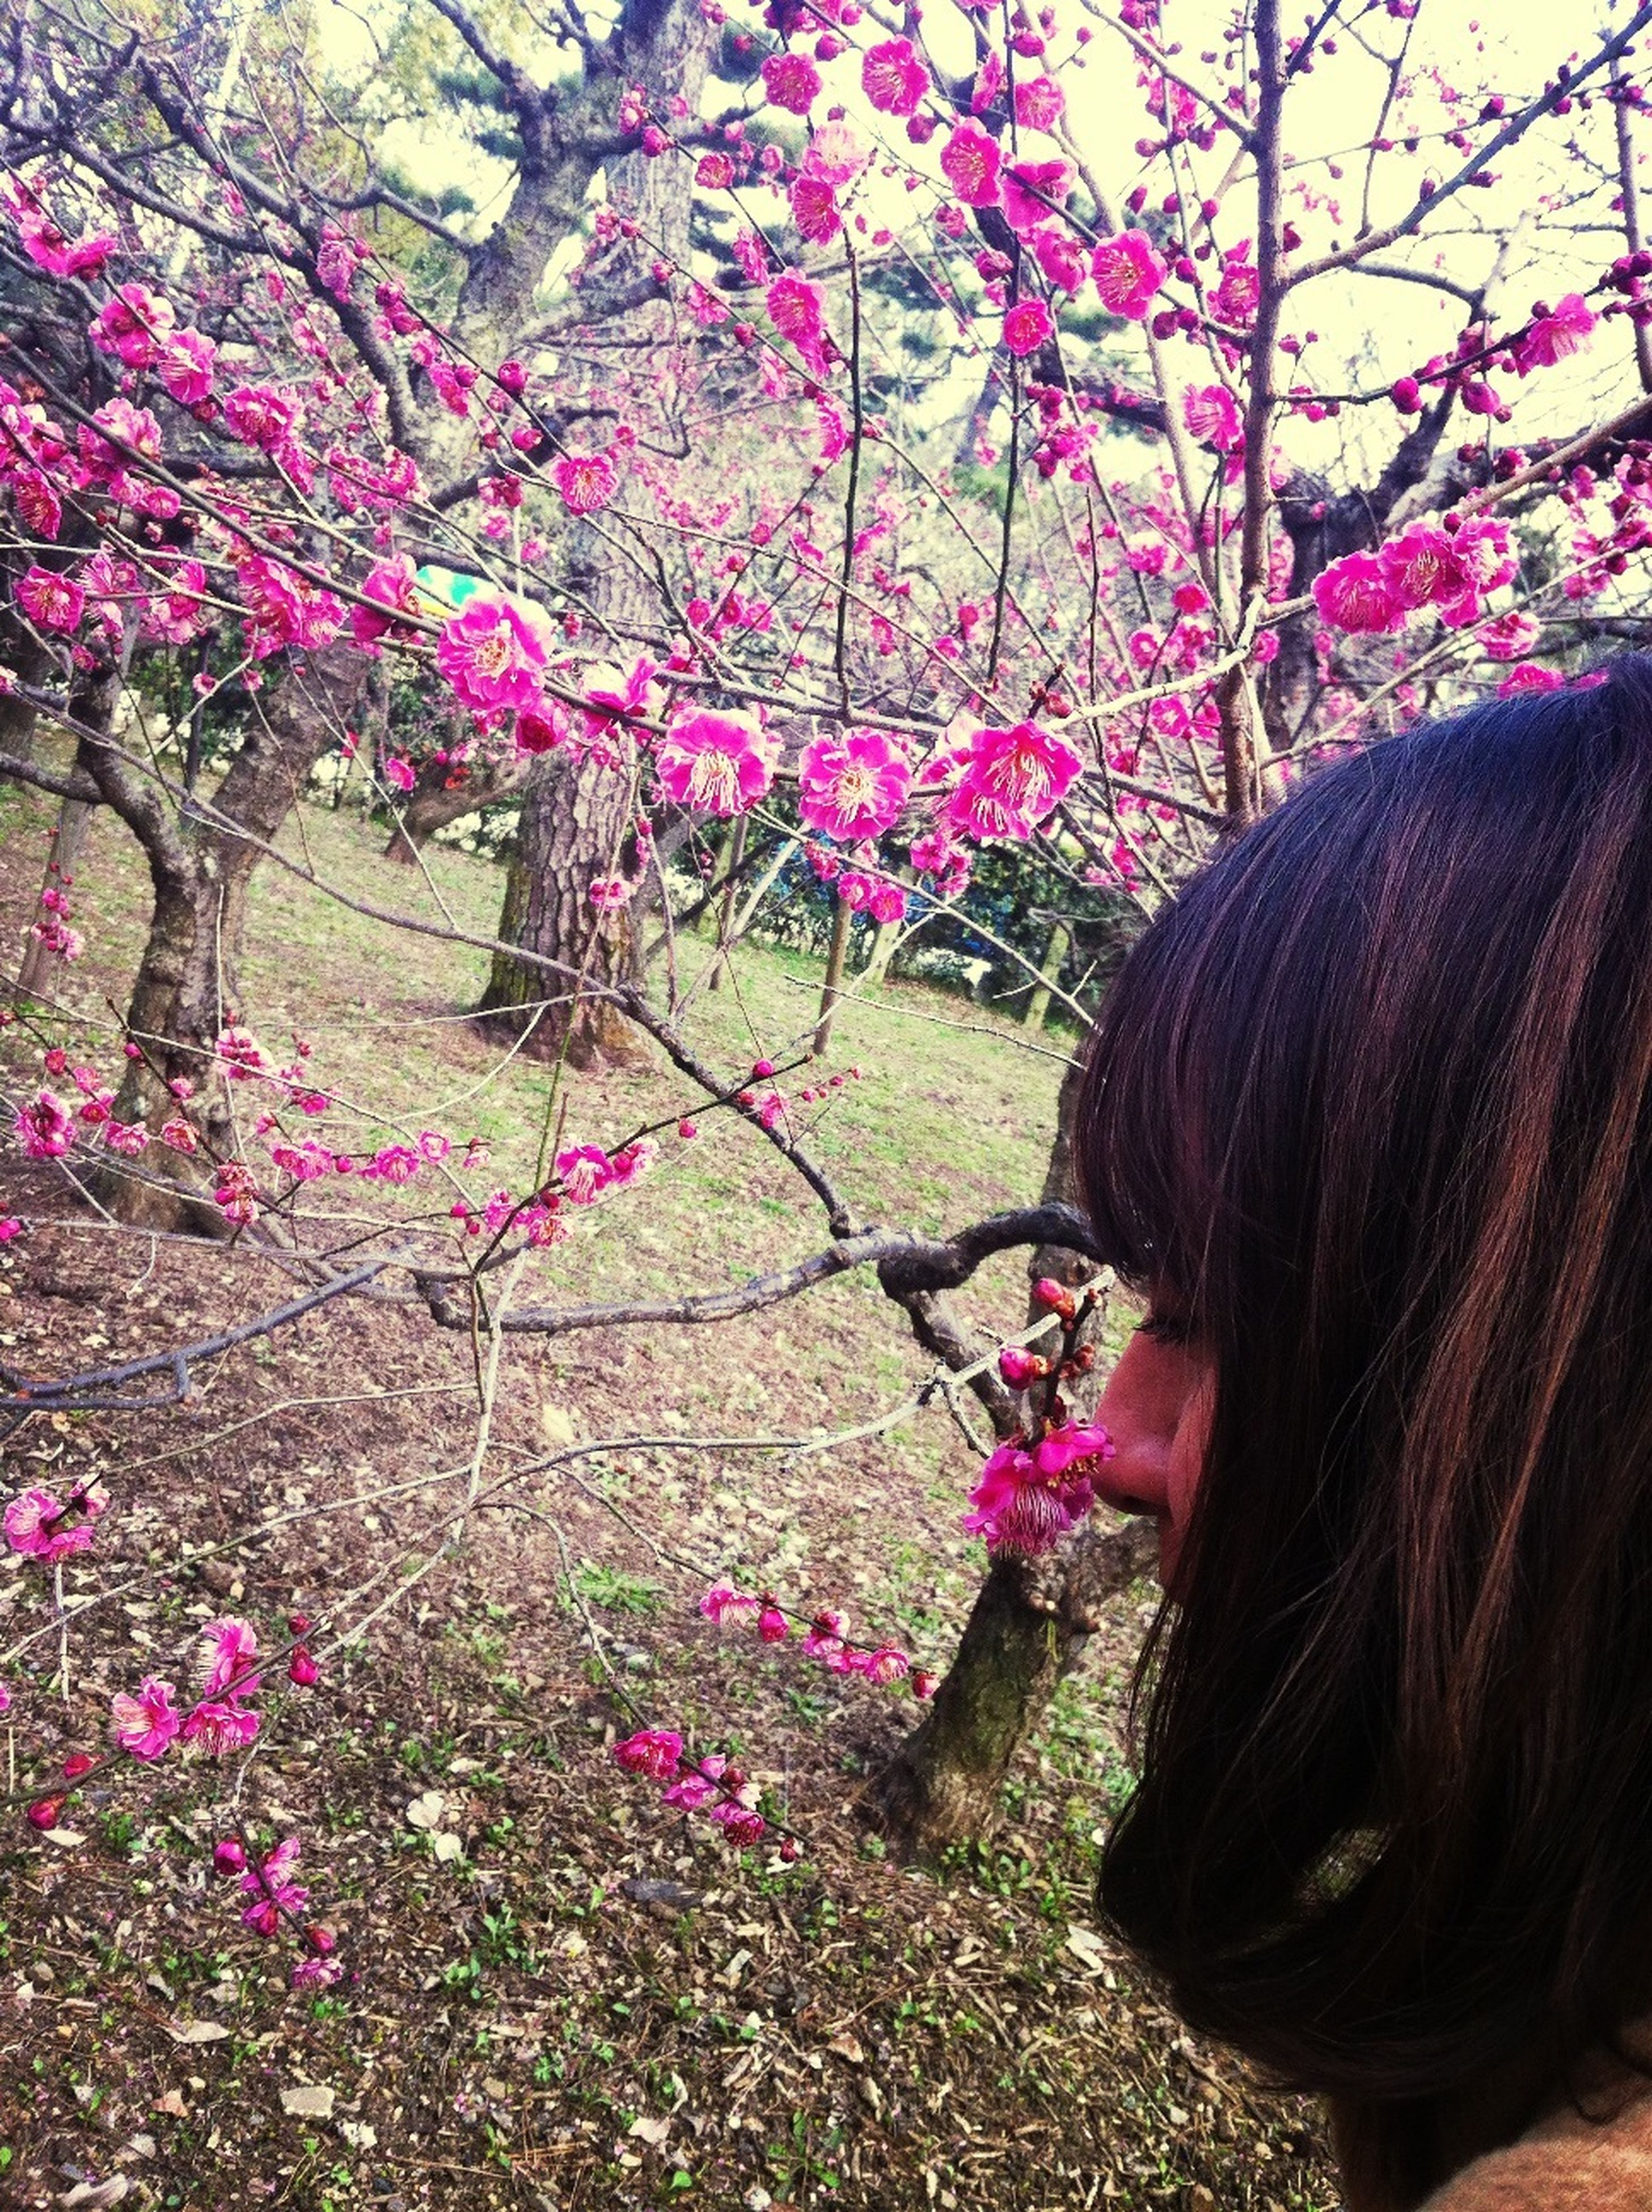 flower, pink color, tree, freshness, beauty in nature, growth, fragility, nature, blossom, petal, blooming, in bloom, park - man made space, branch, plant, day, person, springtime